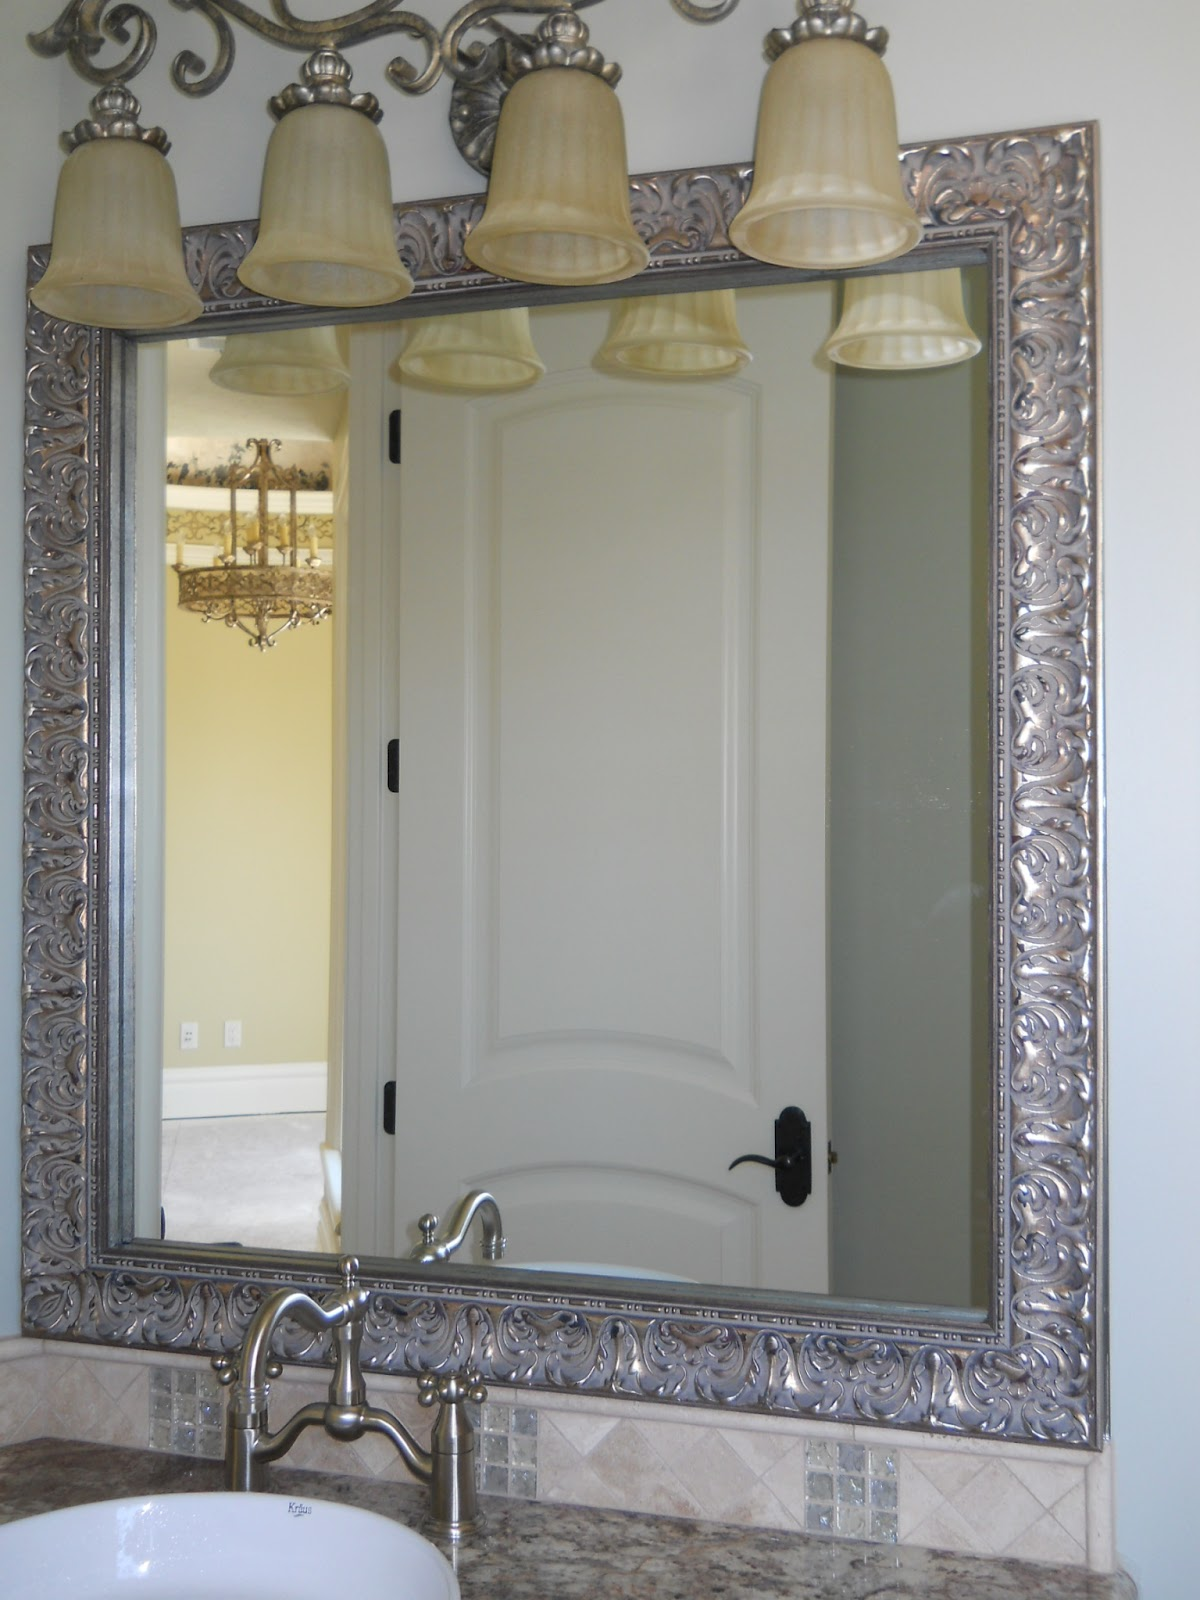 Mirror Frames For Bathrooms: Reflected Design: Bathroom Mirror Frame, Mirror Frame Kit